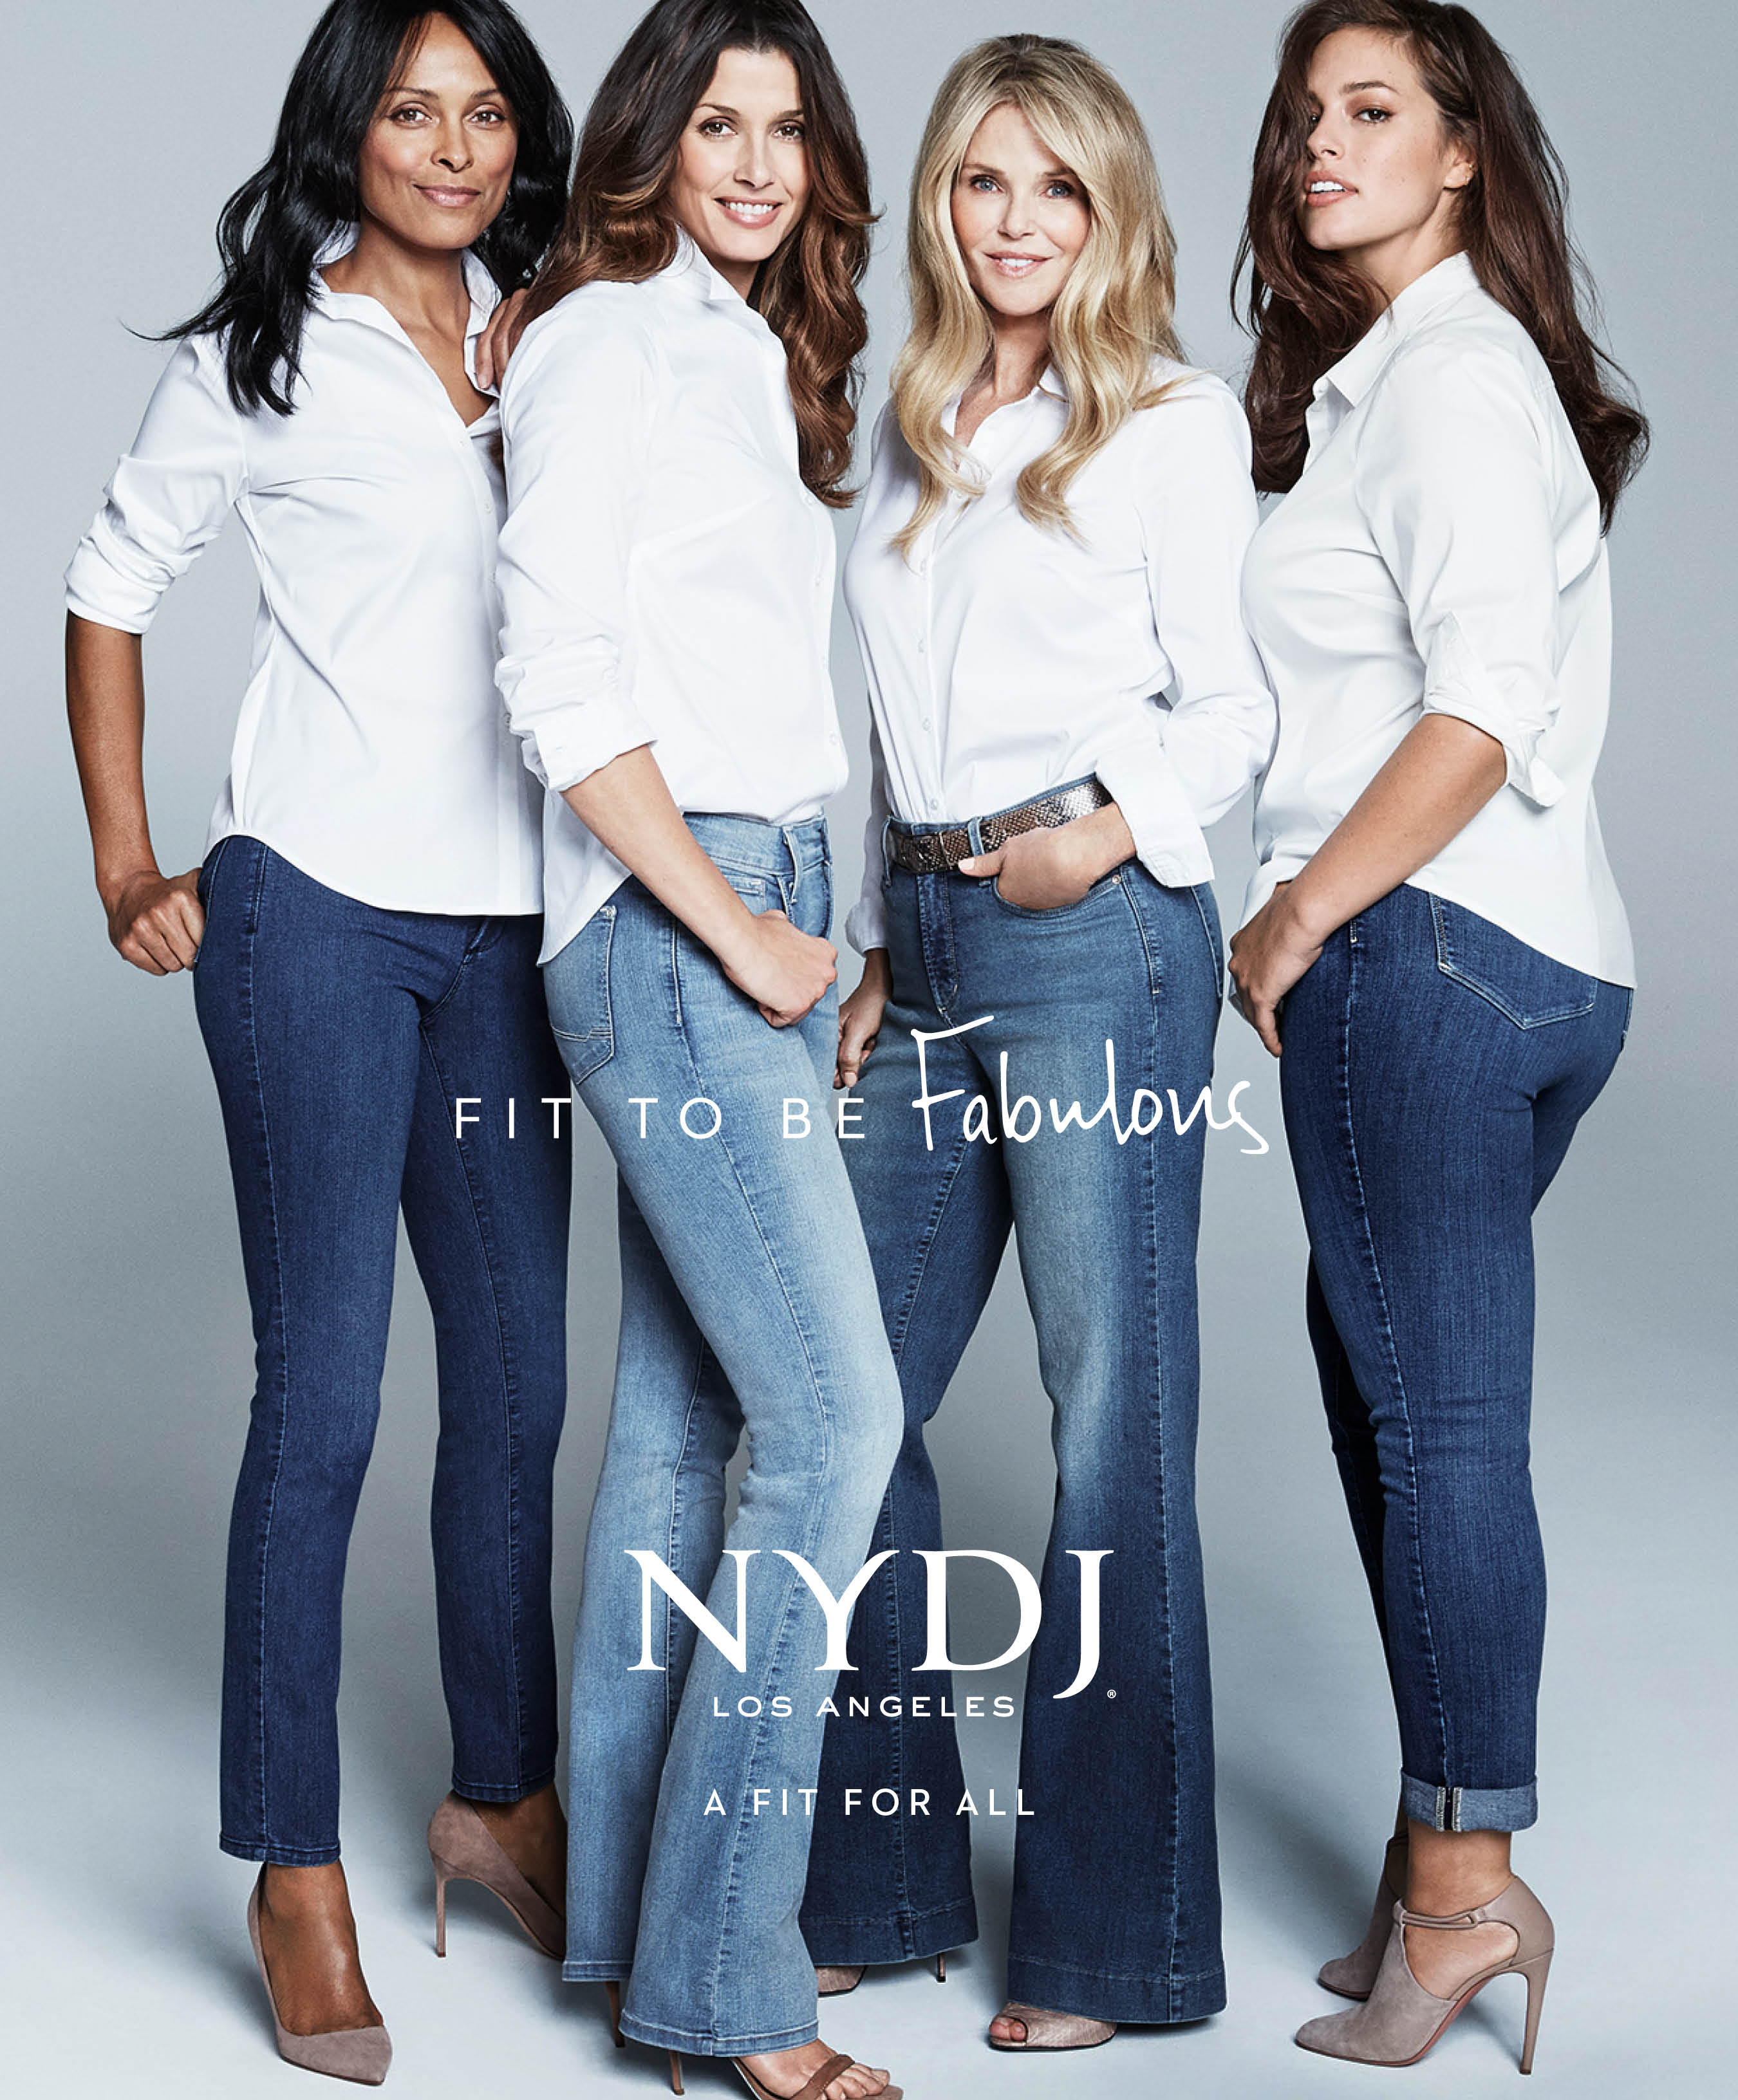 NYDJ'S 2016 Campaign Debuts with Christie Brinkley, Ashley